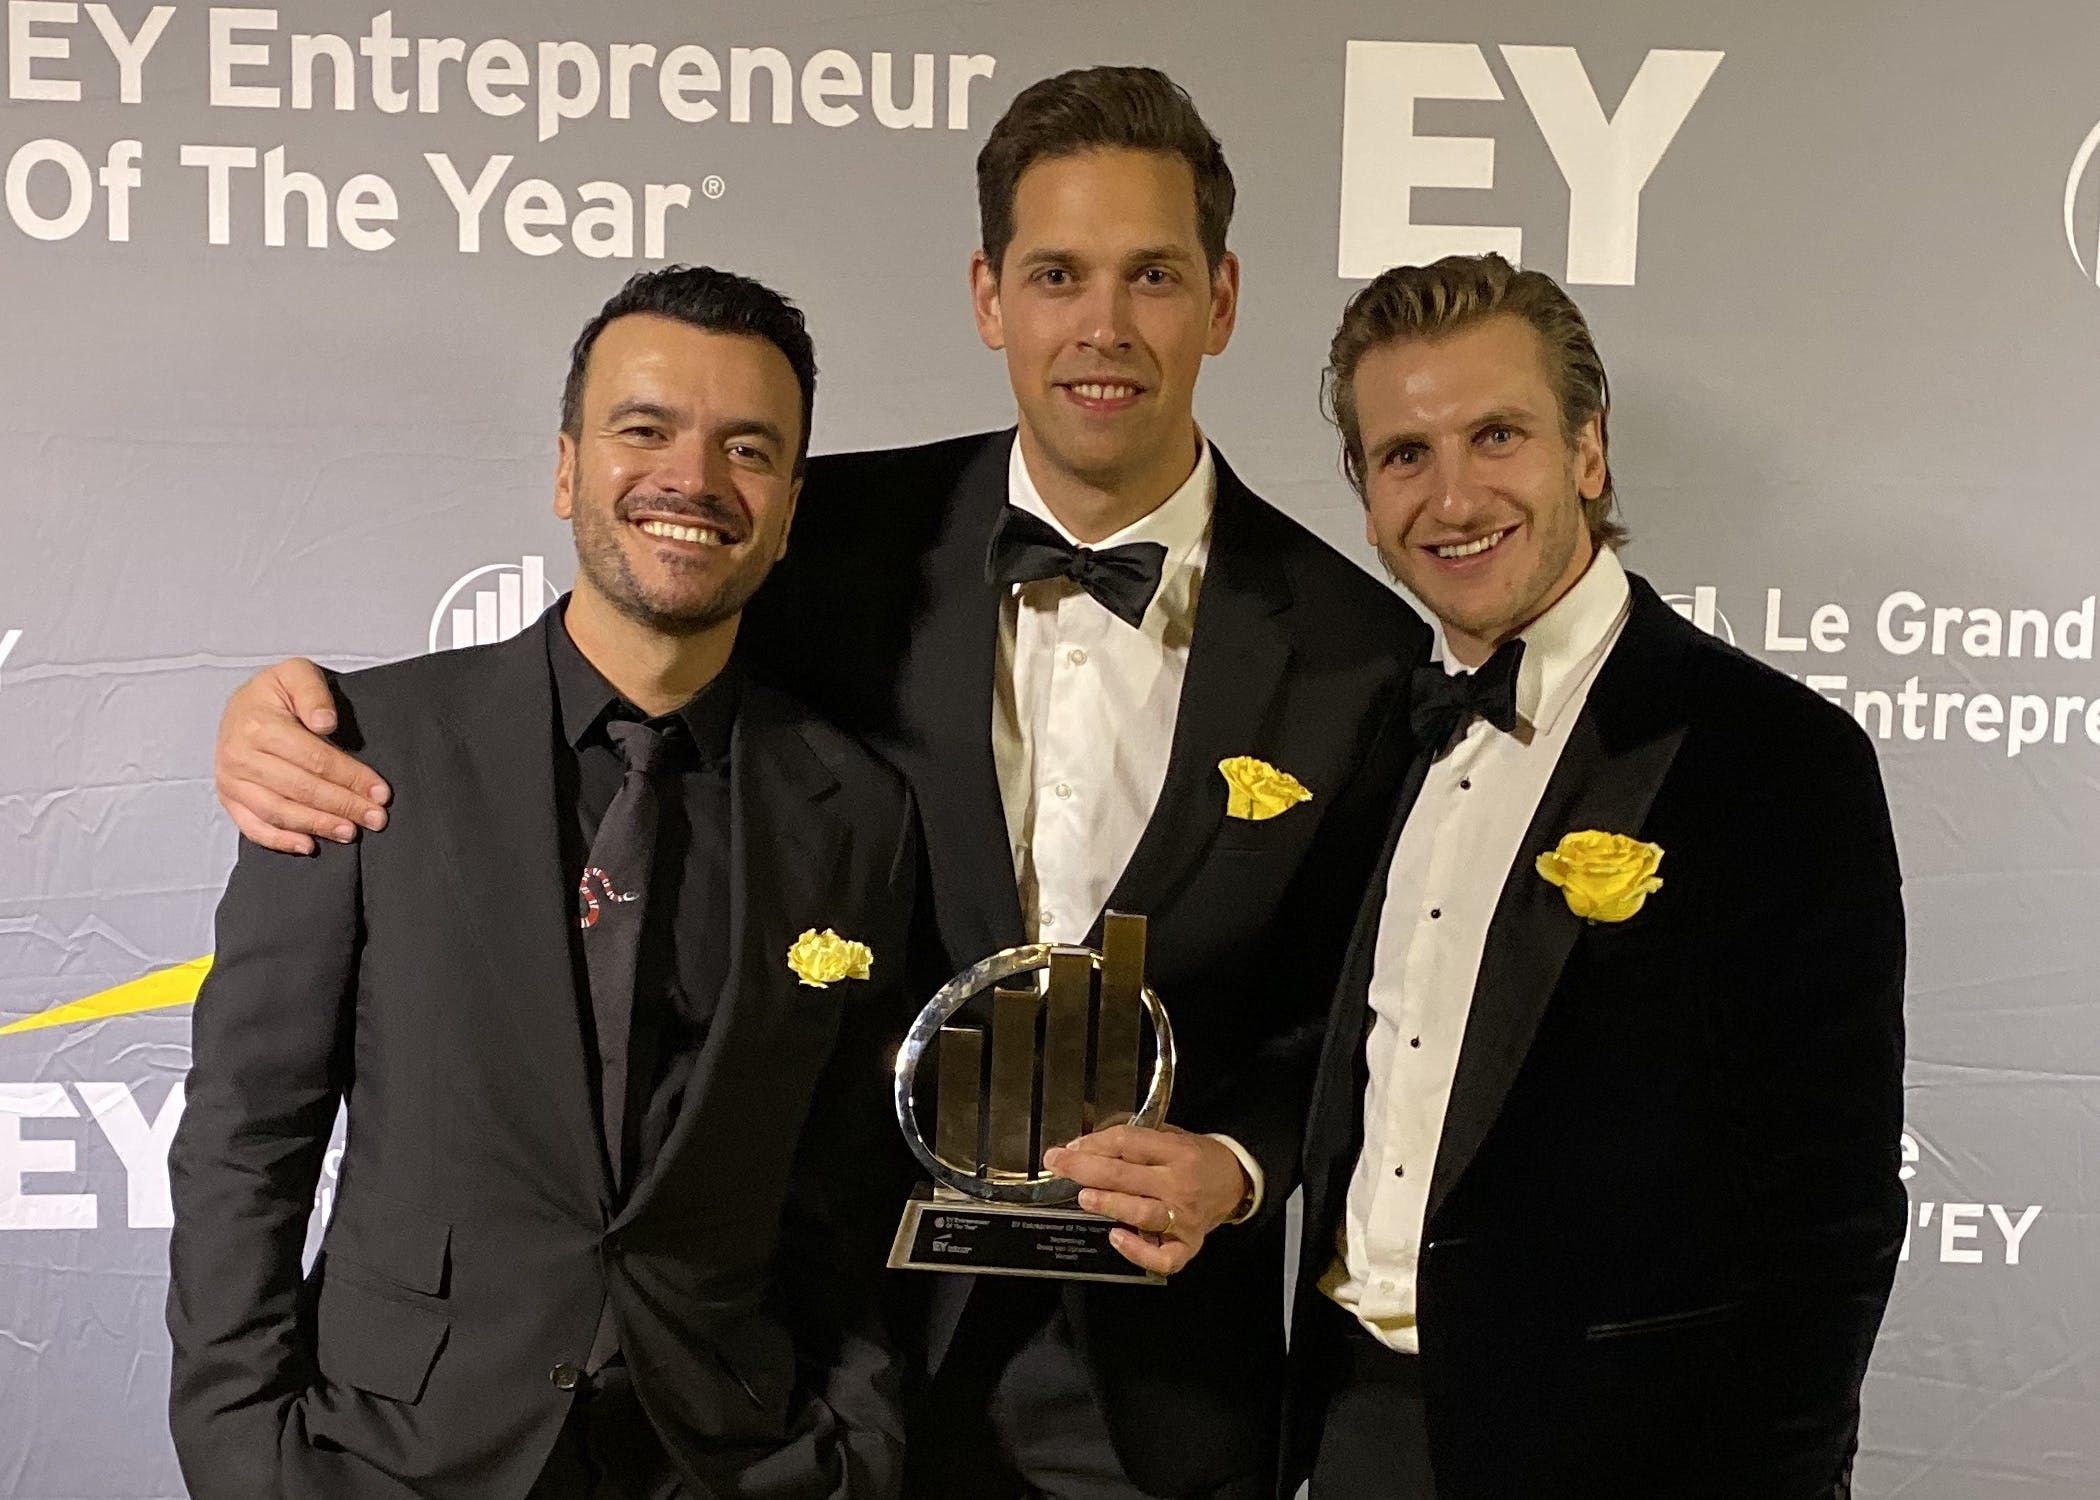 Versett wins the 2019 EY Entrepreneur of the Year Award in Technology